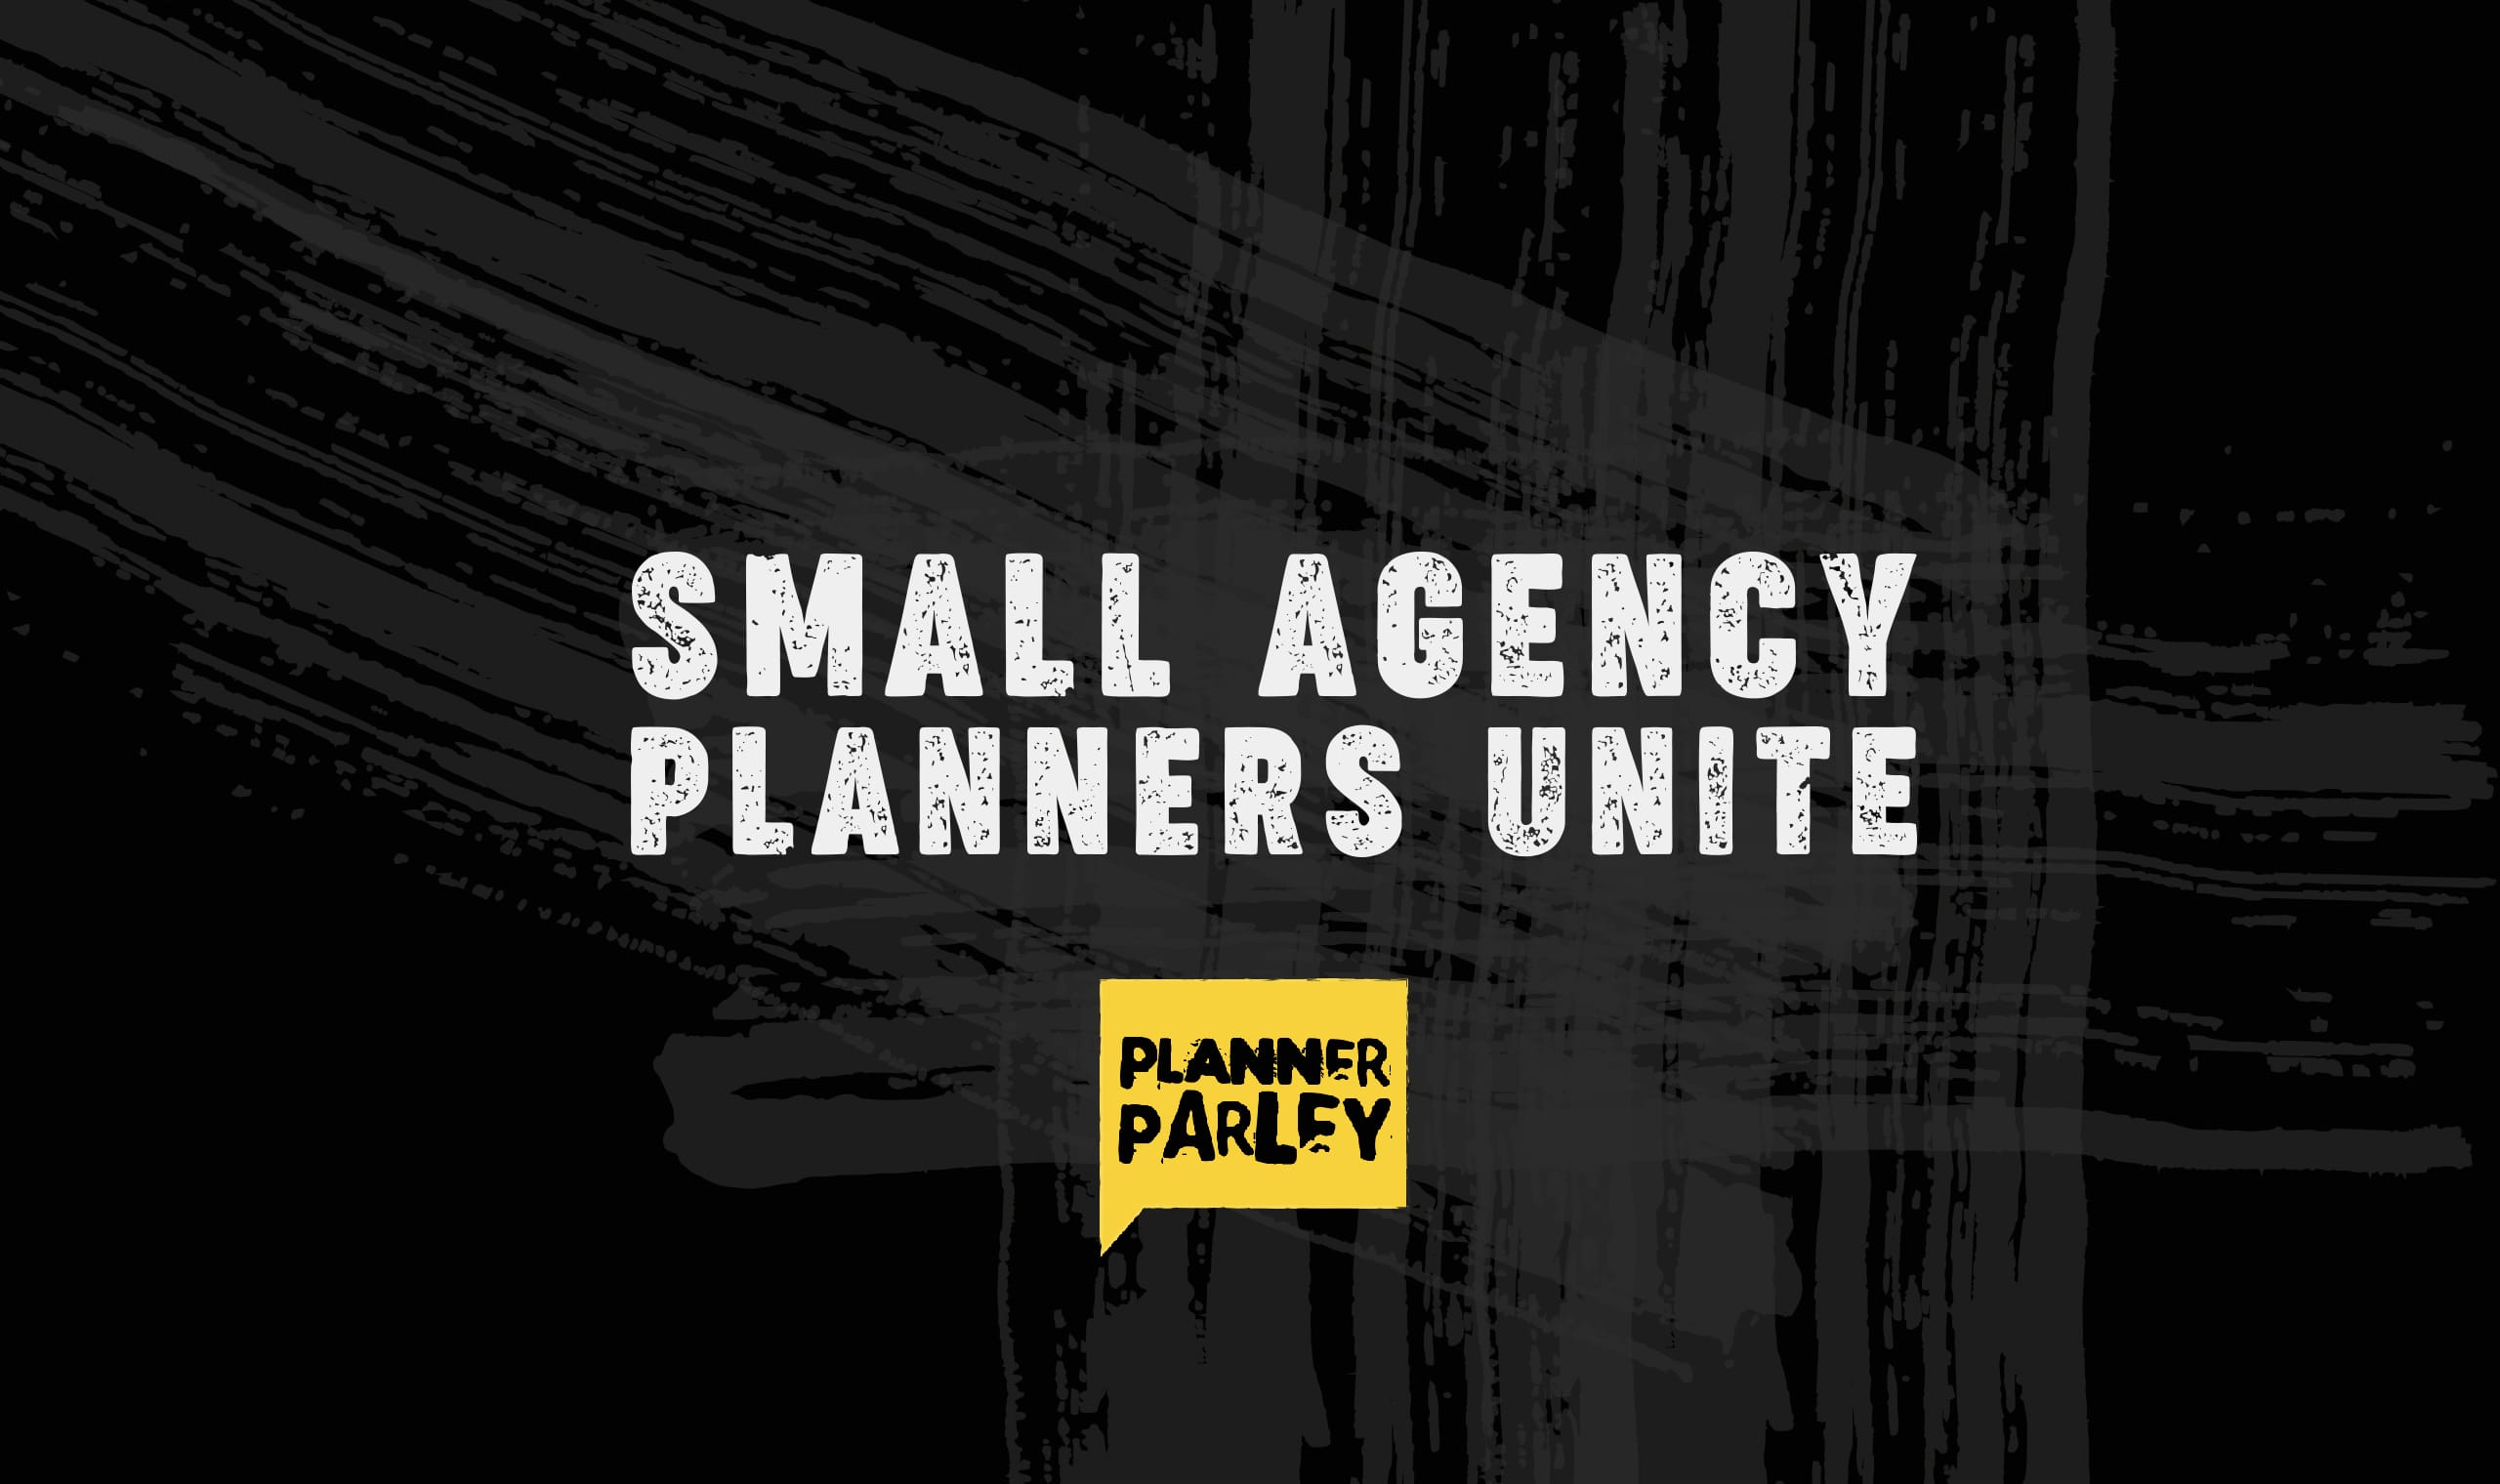 Planner Parley graphic